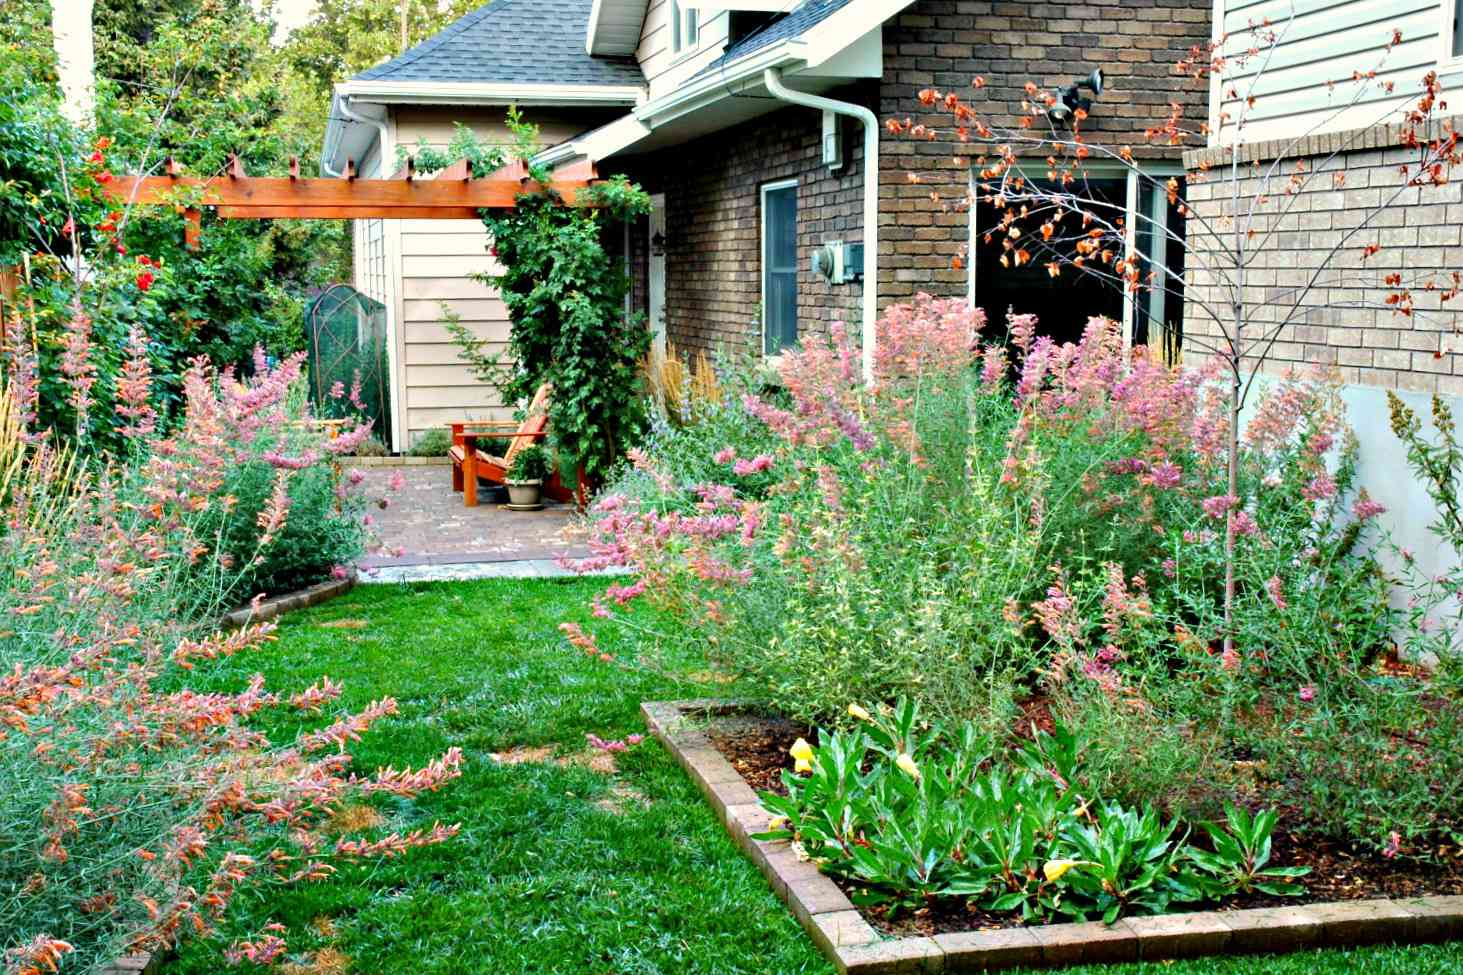 Best backyard landscaping ideas #3